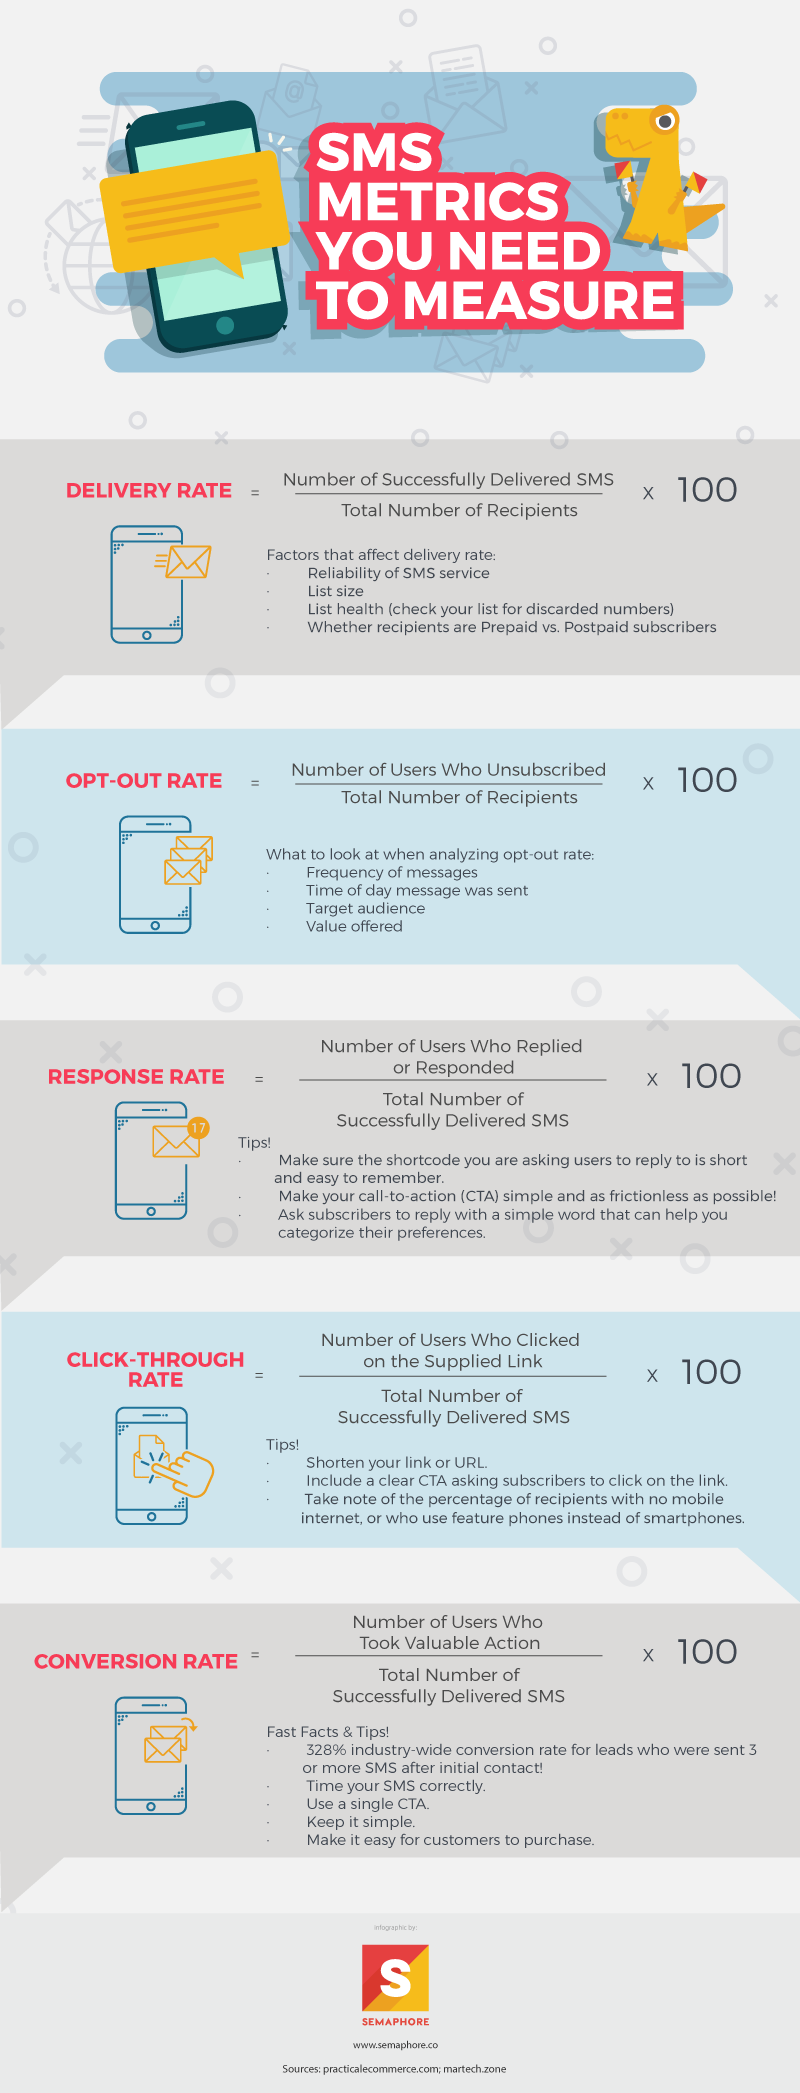 SMS Metrics You Need to Measure Infographic